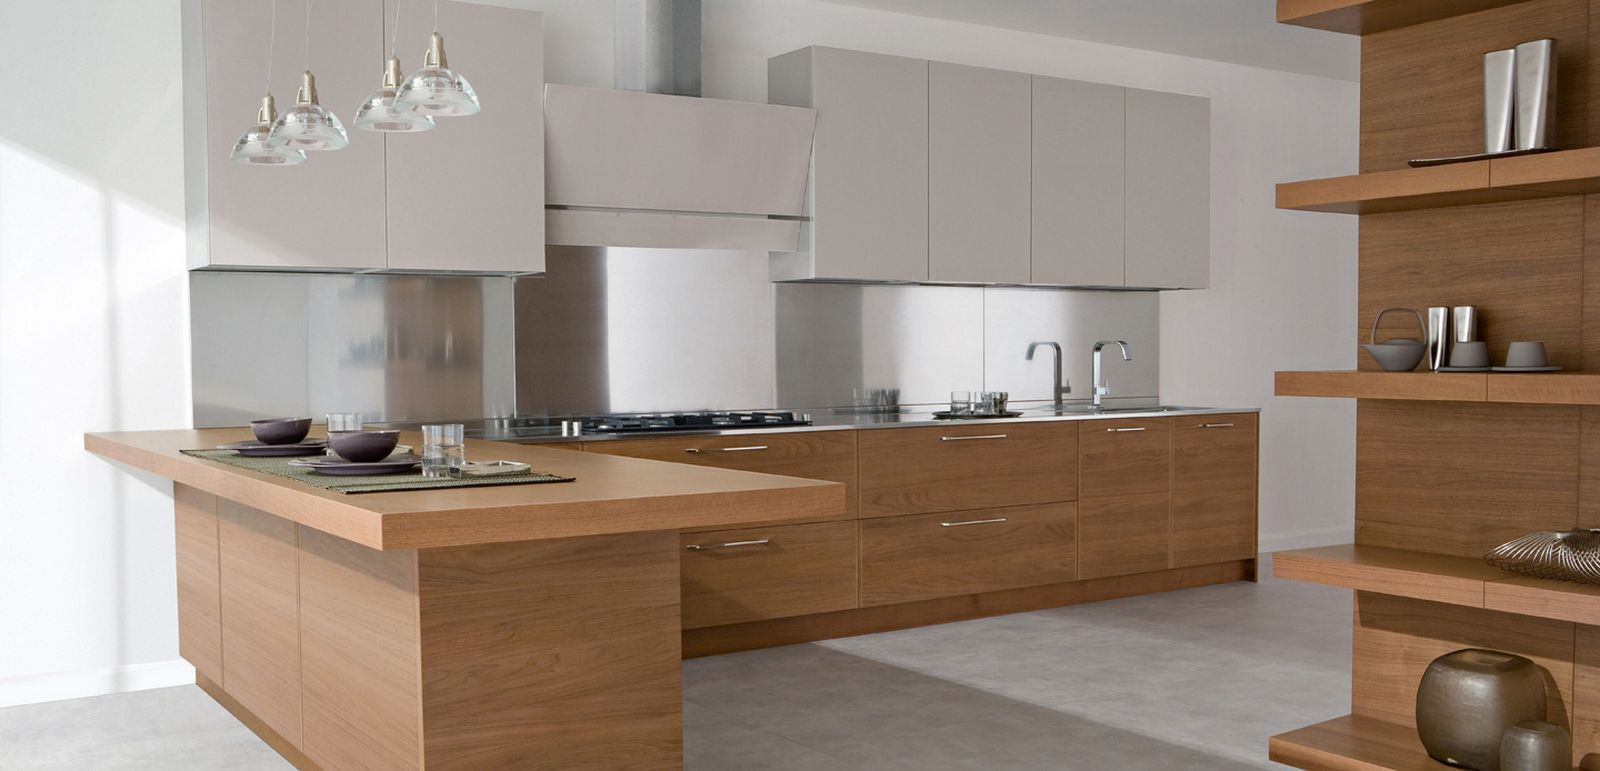 Wooden Kitchen Design Ideas Part - 41: Design-ideas-home-design-inspiration-wood-and-lacquered-